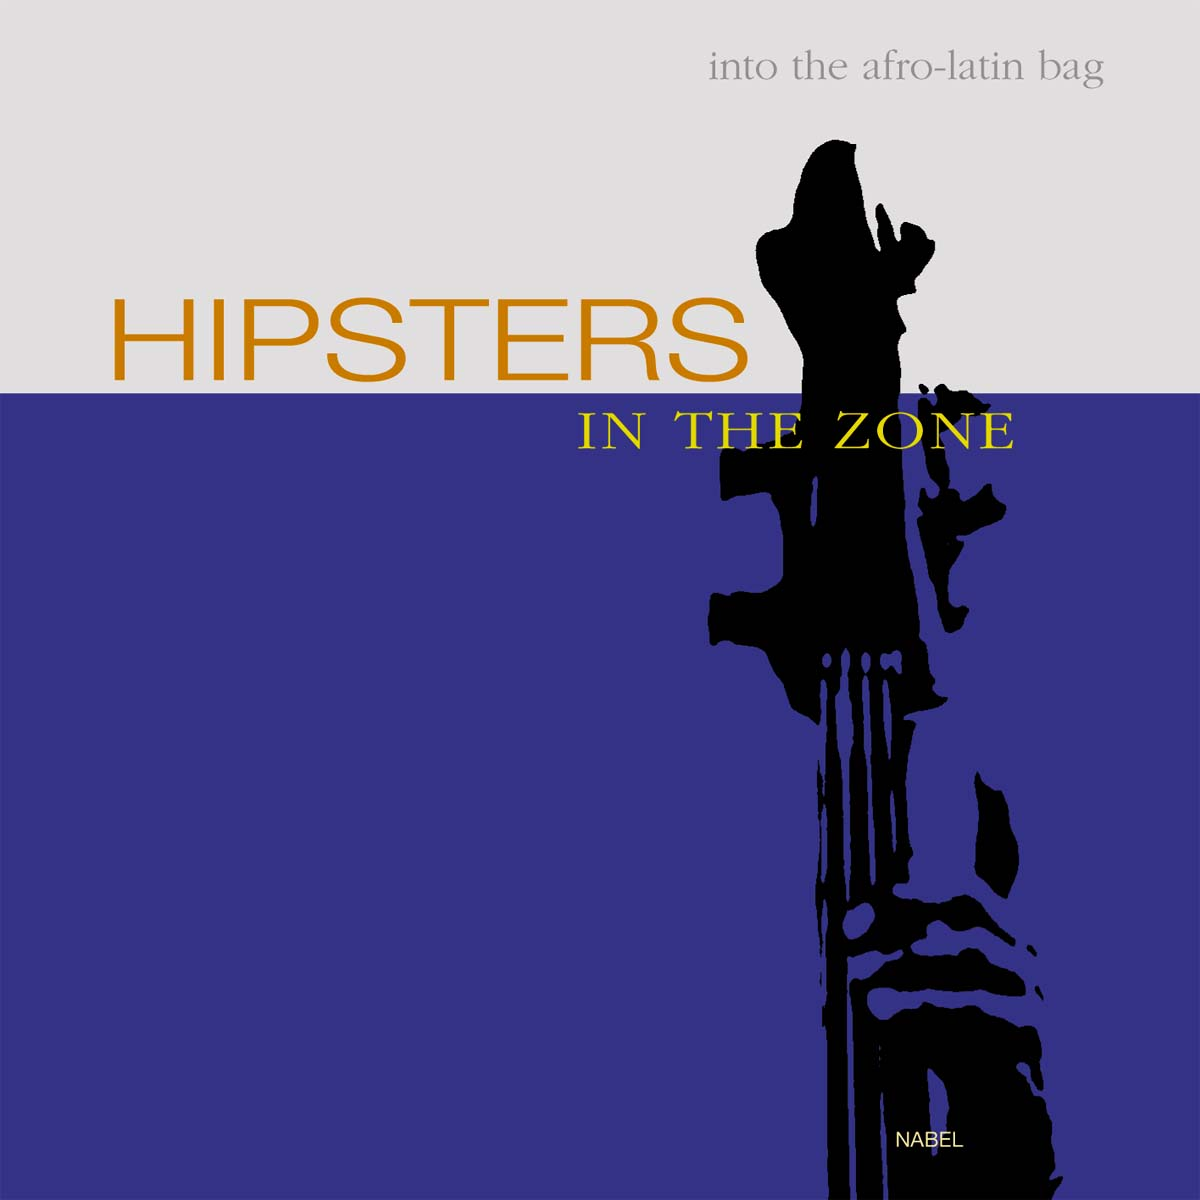 Hipsters in the zone